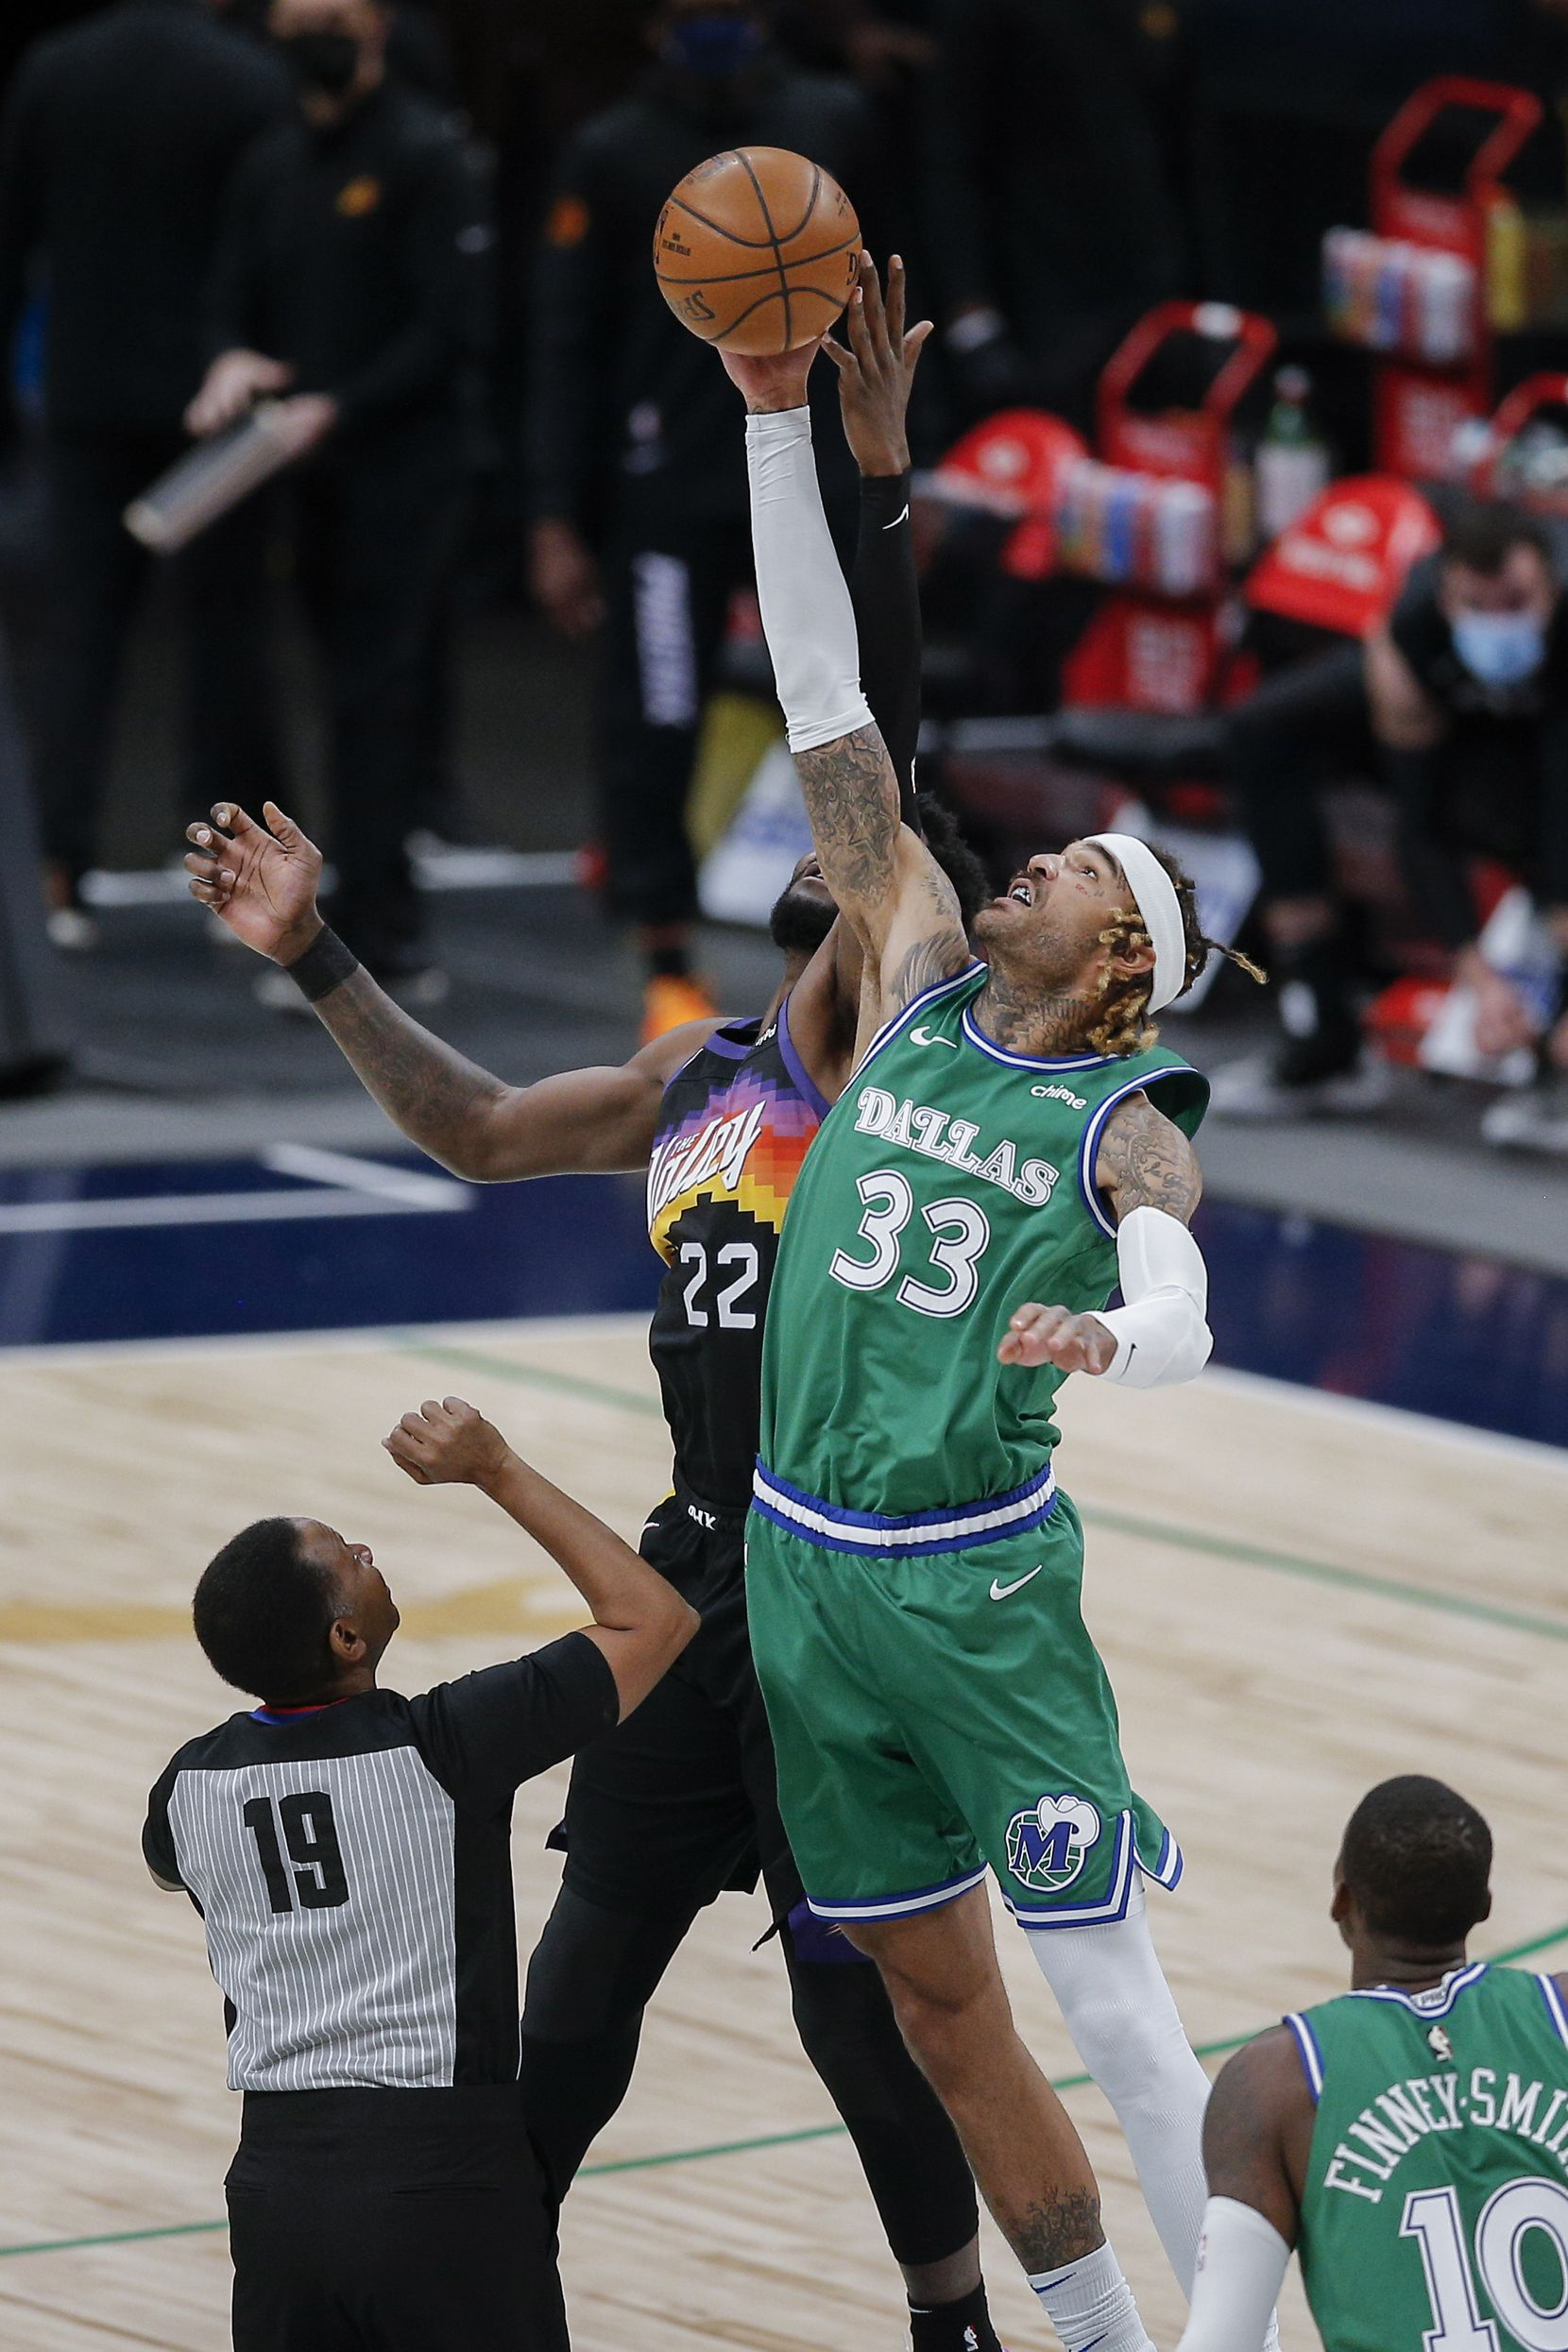 Dallas Mavericks forward Willie Cauley-Stein (33) wins the opening tip off against Phoenix Suns forward Deandre Ayton (22)  during the first half of an NBA basketball game in Dallas, Saturday, January 30, 2021. (Brandon Wade/Special Contributor)